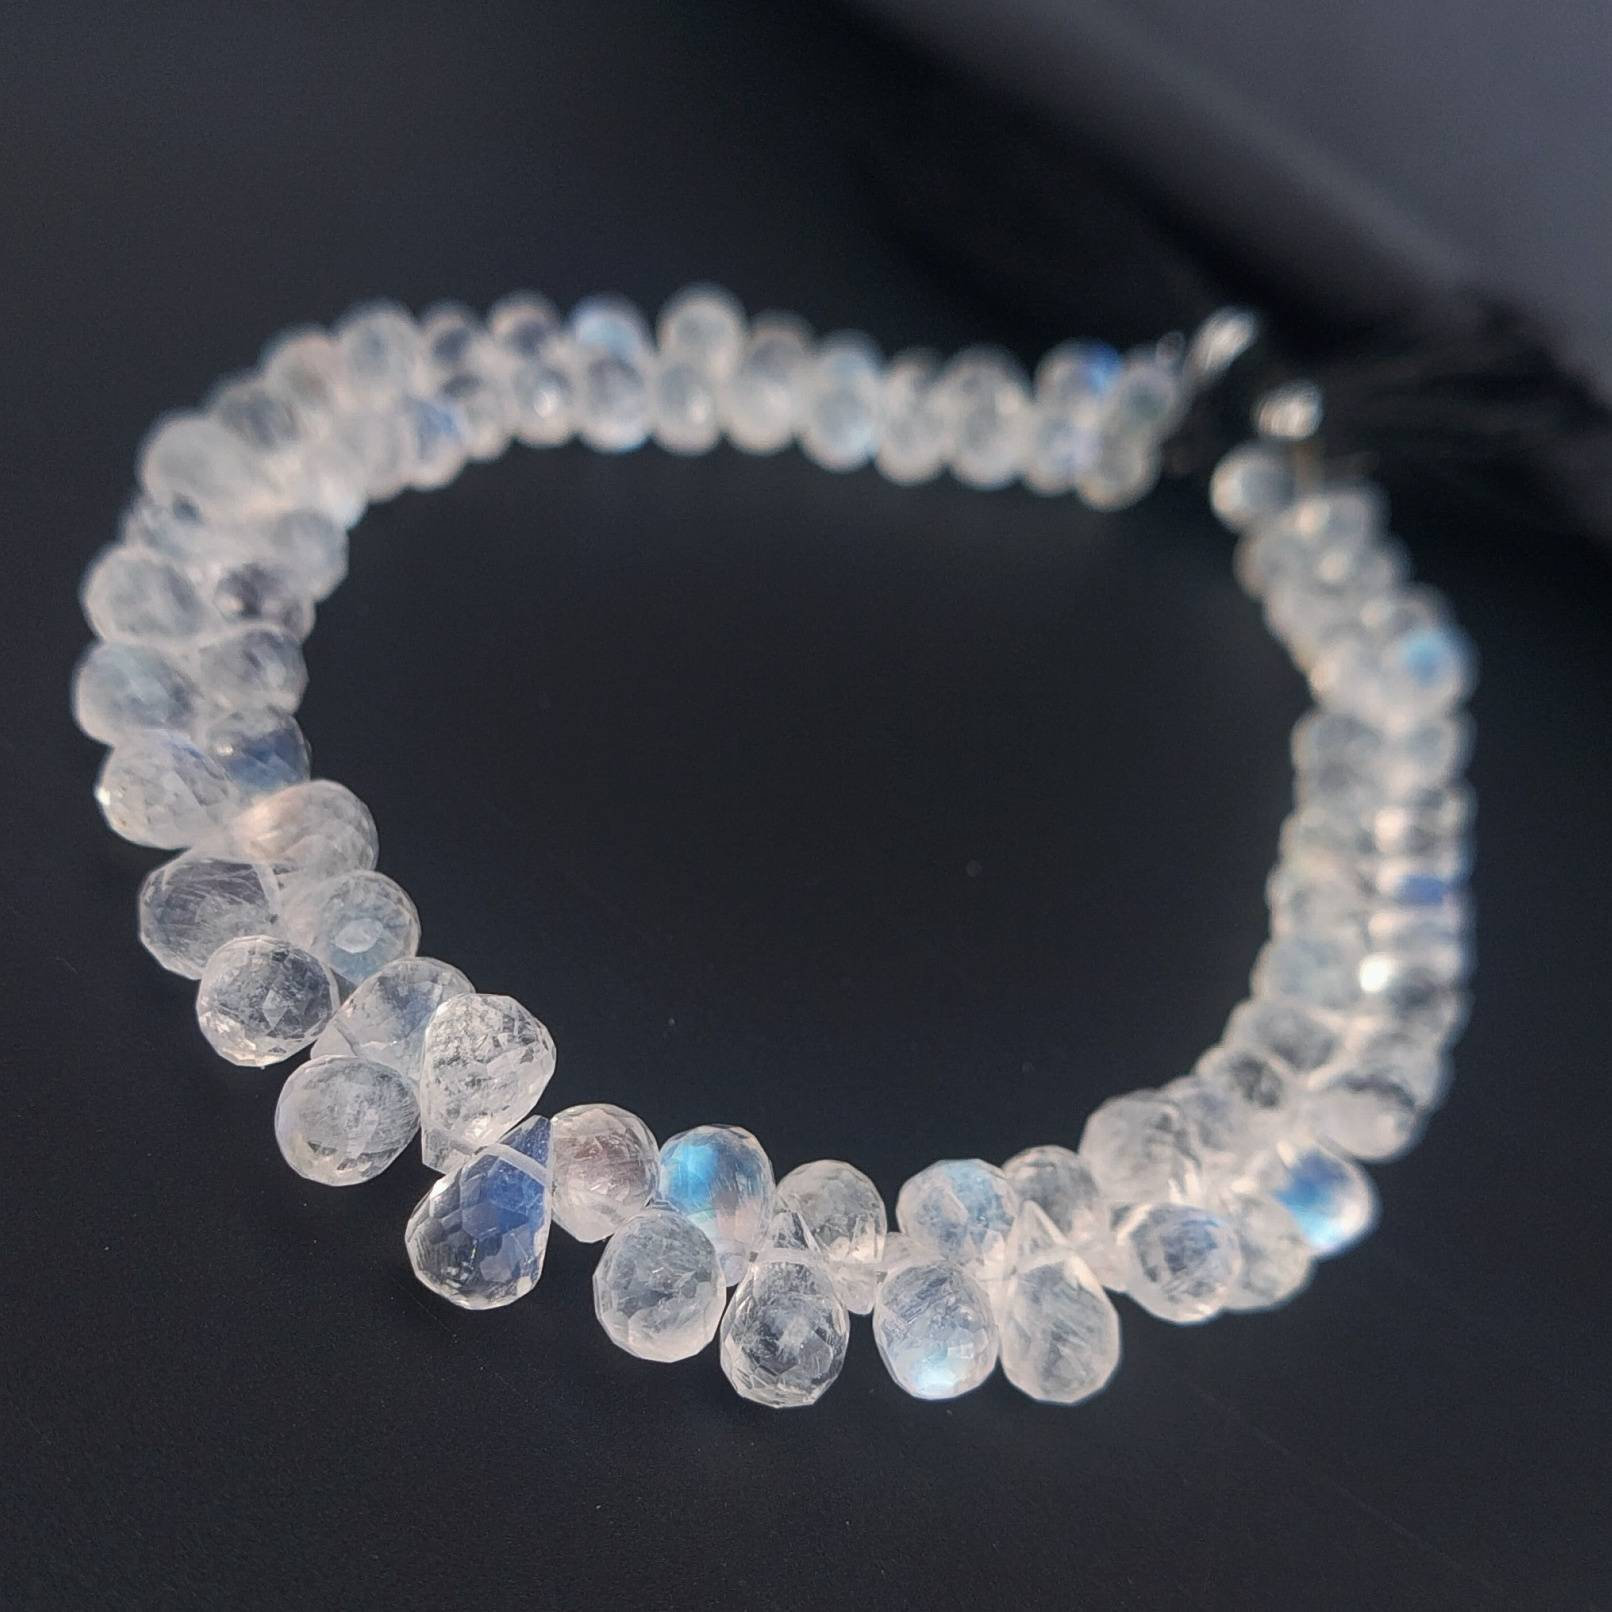 8 Inches Strand,Blue Flashy Rainbow Moonstone Faceted Pear Shaped Briolettes,6-8mm